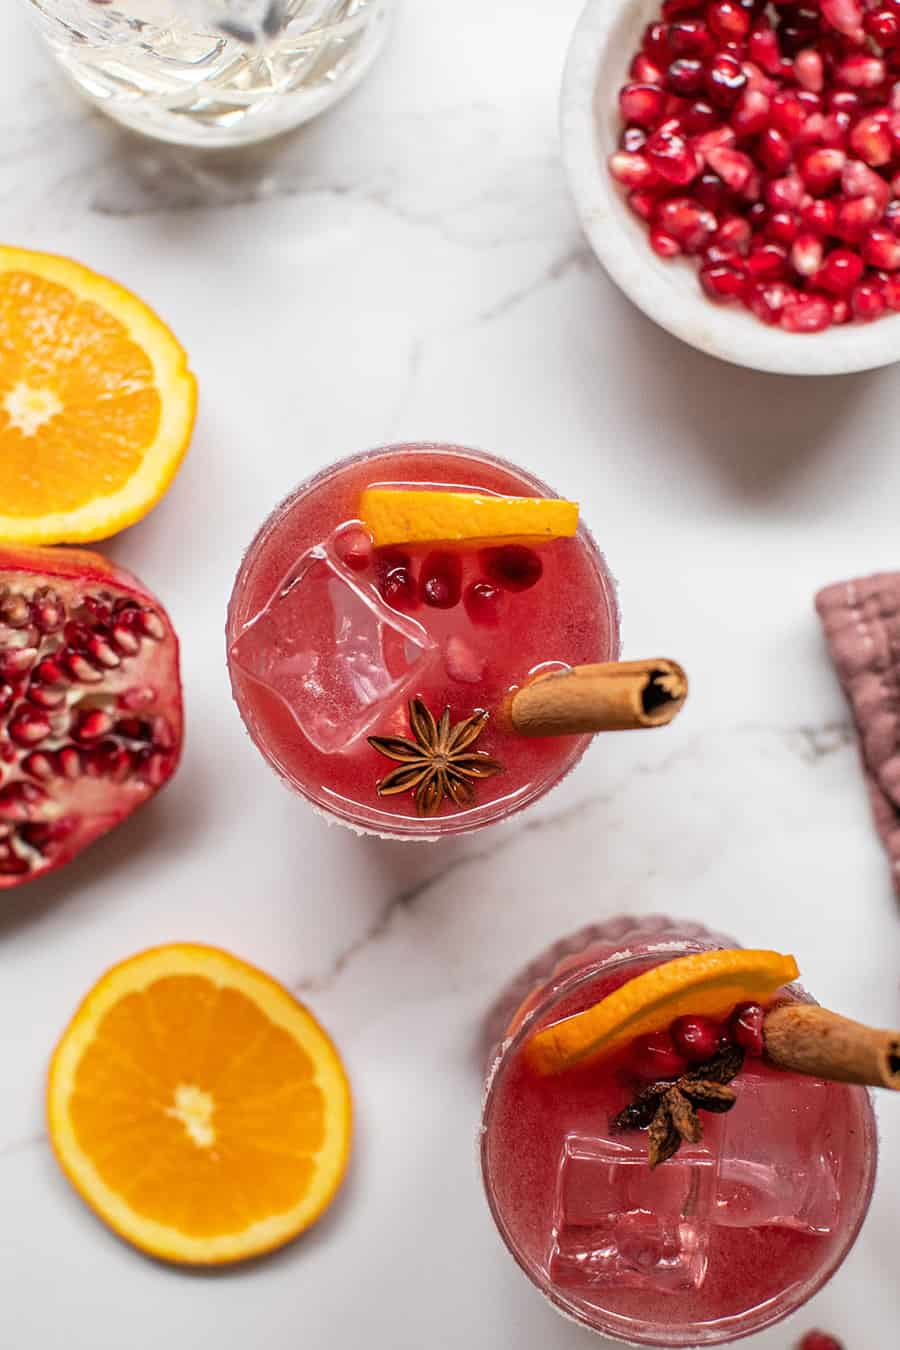 Pomegranate margaritas with cinnamon sticks and star anise.